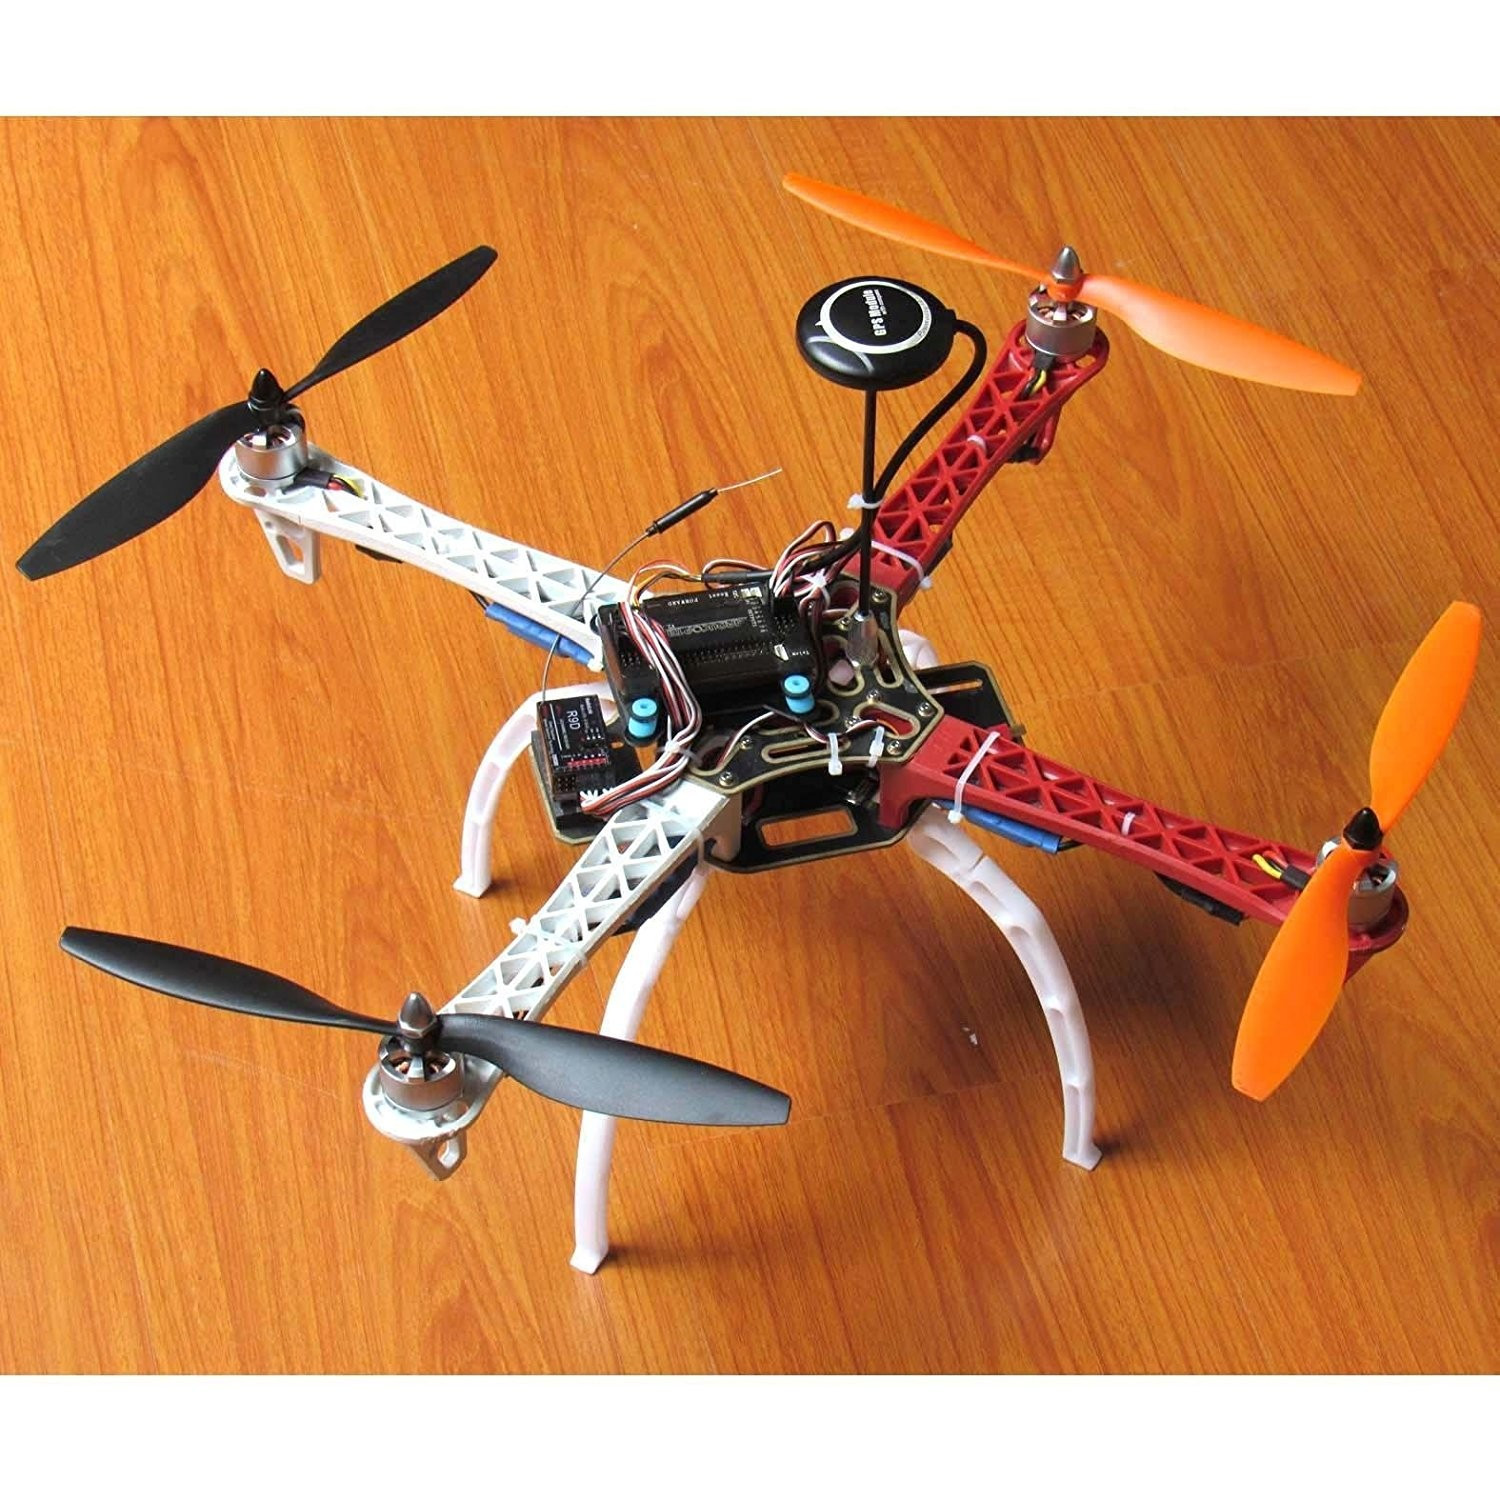 Best ideas about Quadcopter DIY Kit . Save or Pin Best Hobbypower ATF DIY F450 Quadcopter Kit With APM2 8 Now.